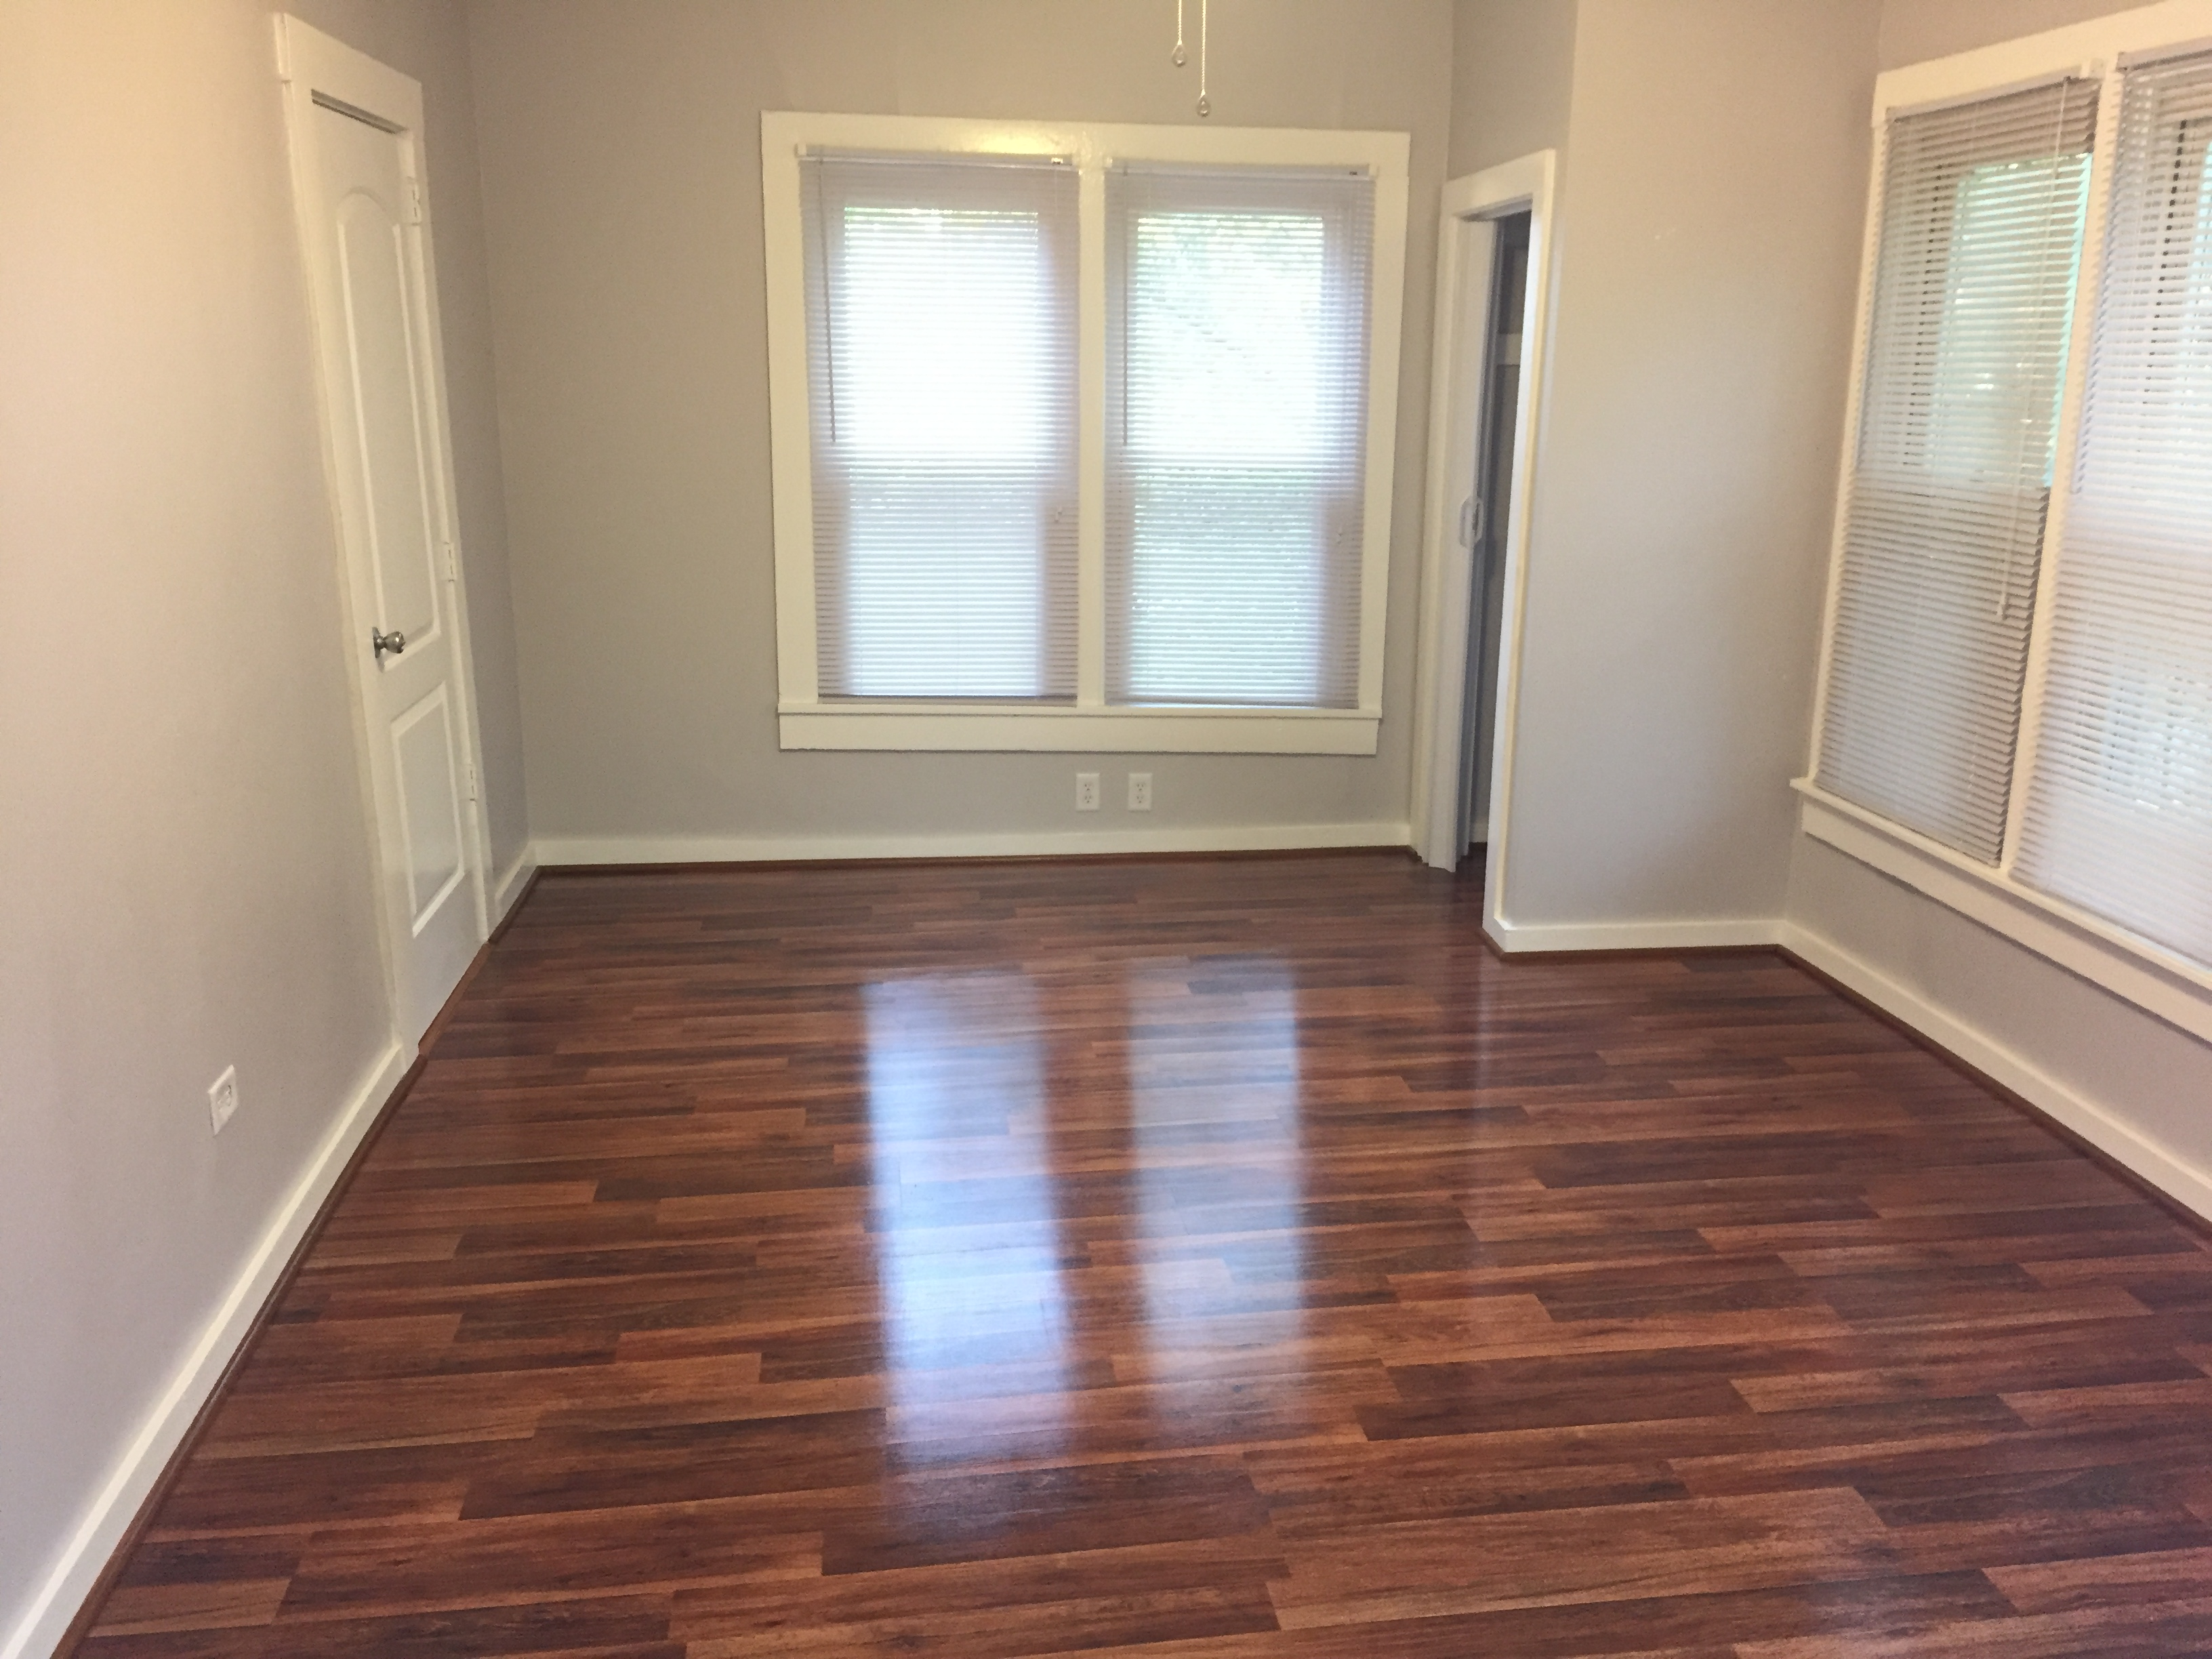 Drywall and Flooring